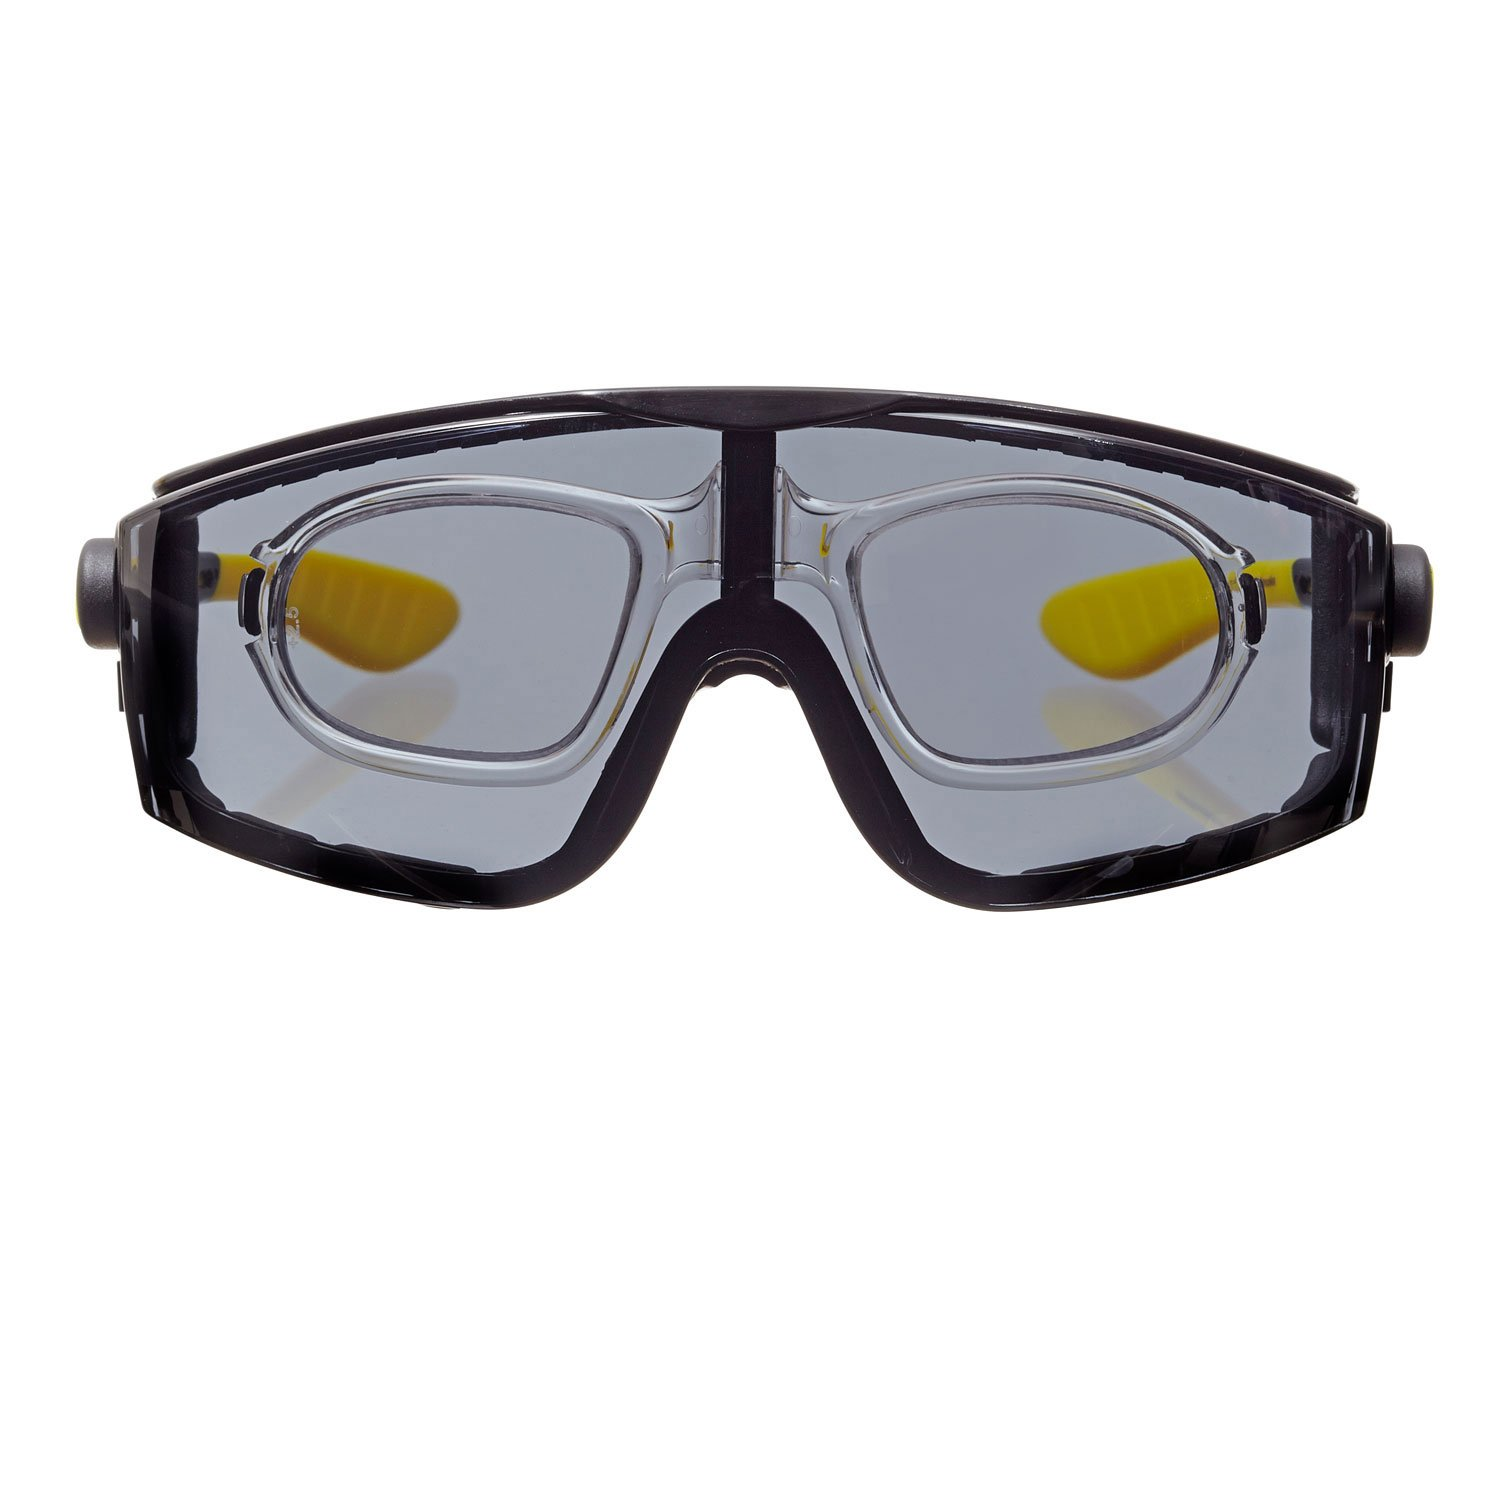 voltX 'QUAD' 4 in 1, FULL LENS Reading insert Safety Glasses (+2.0 Dioptre, YELLOW LENS), with foam insert, removable headstrap, CE EN166f certified